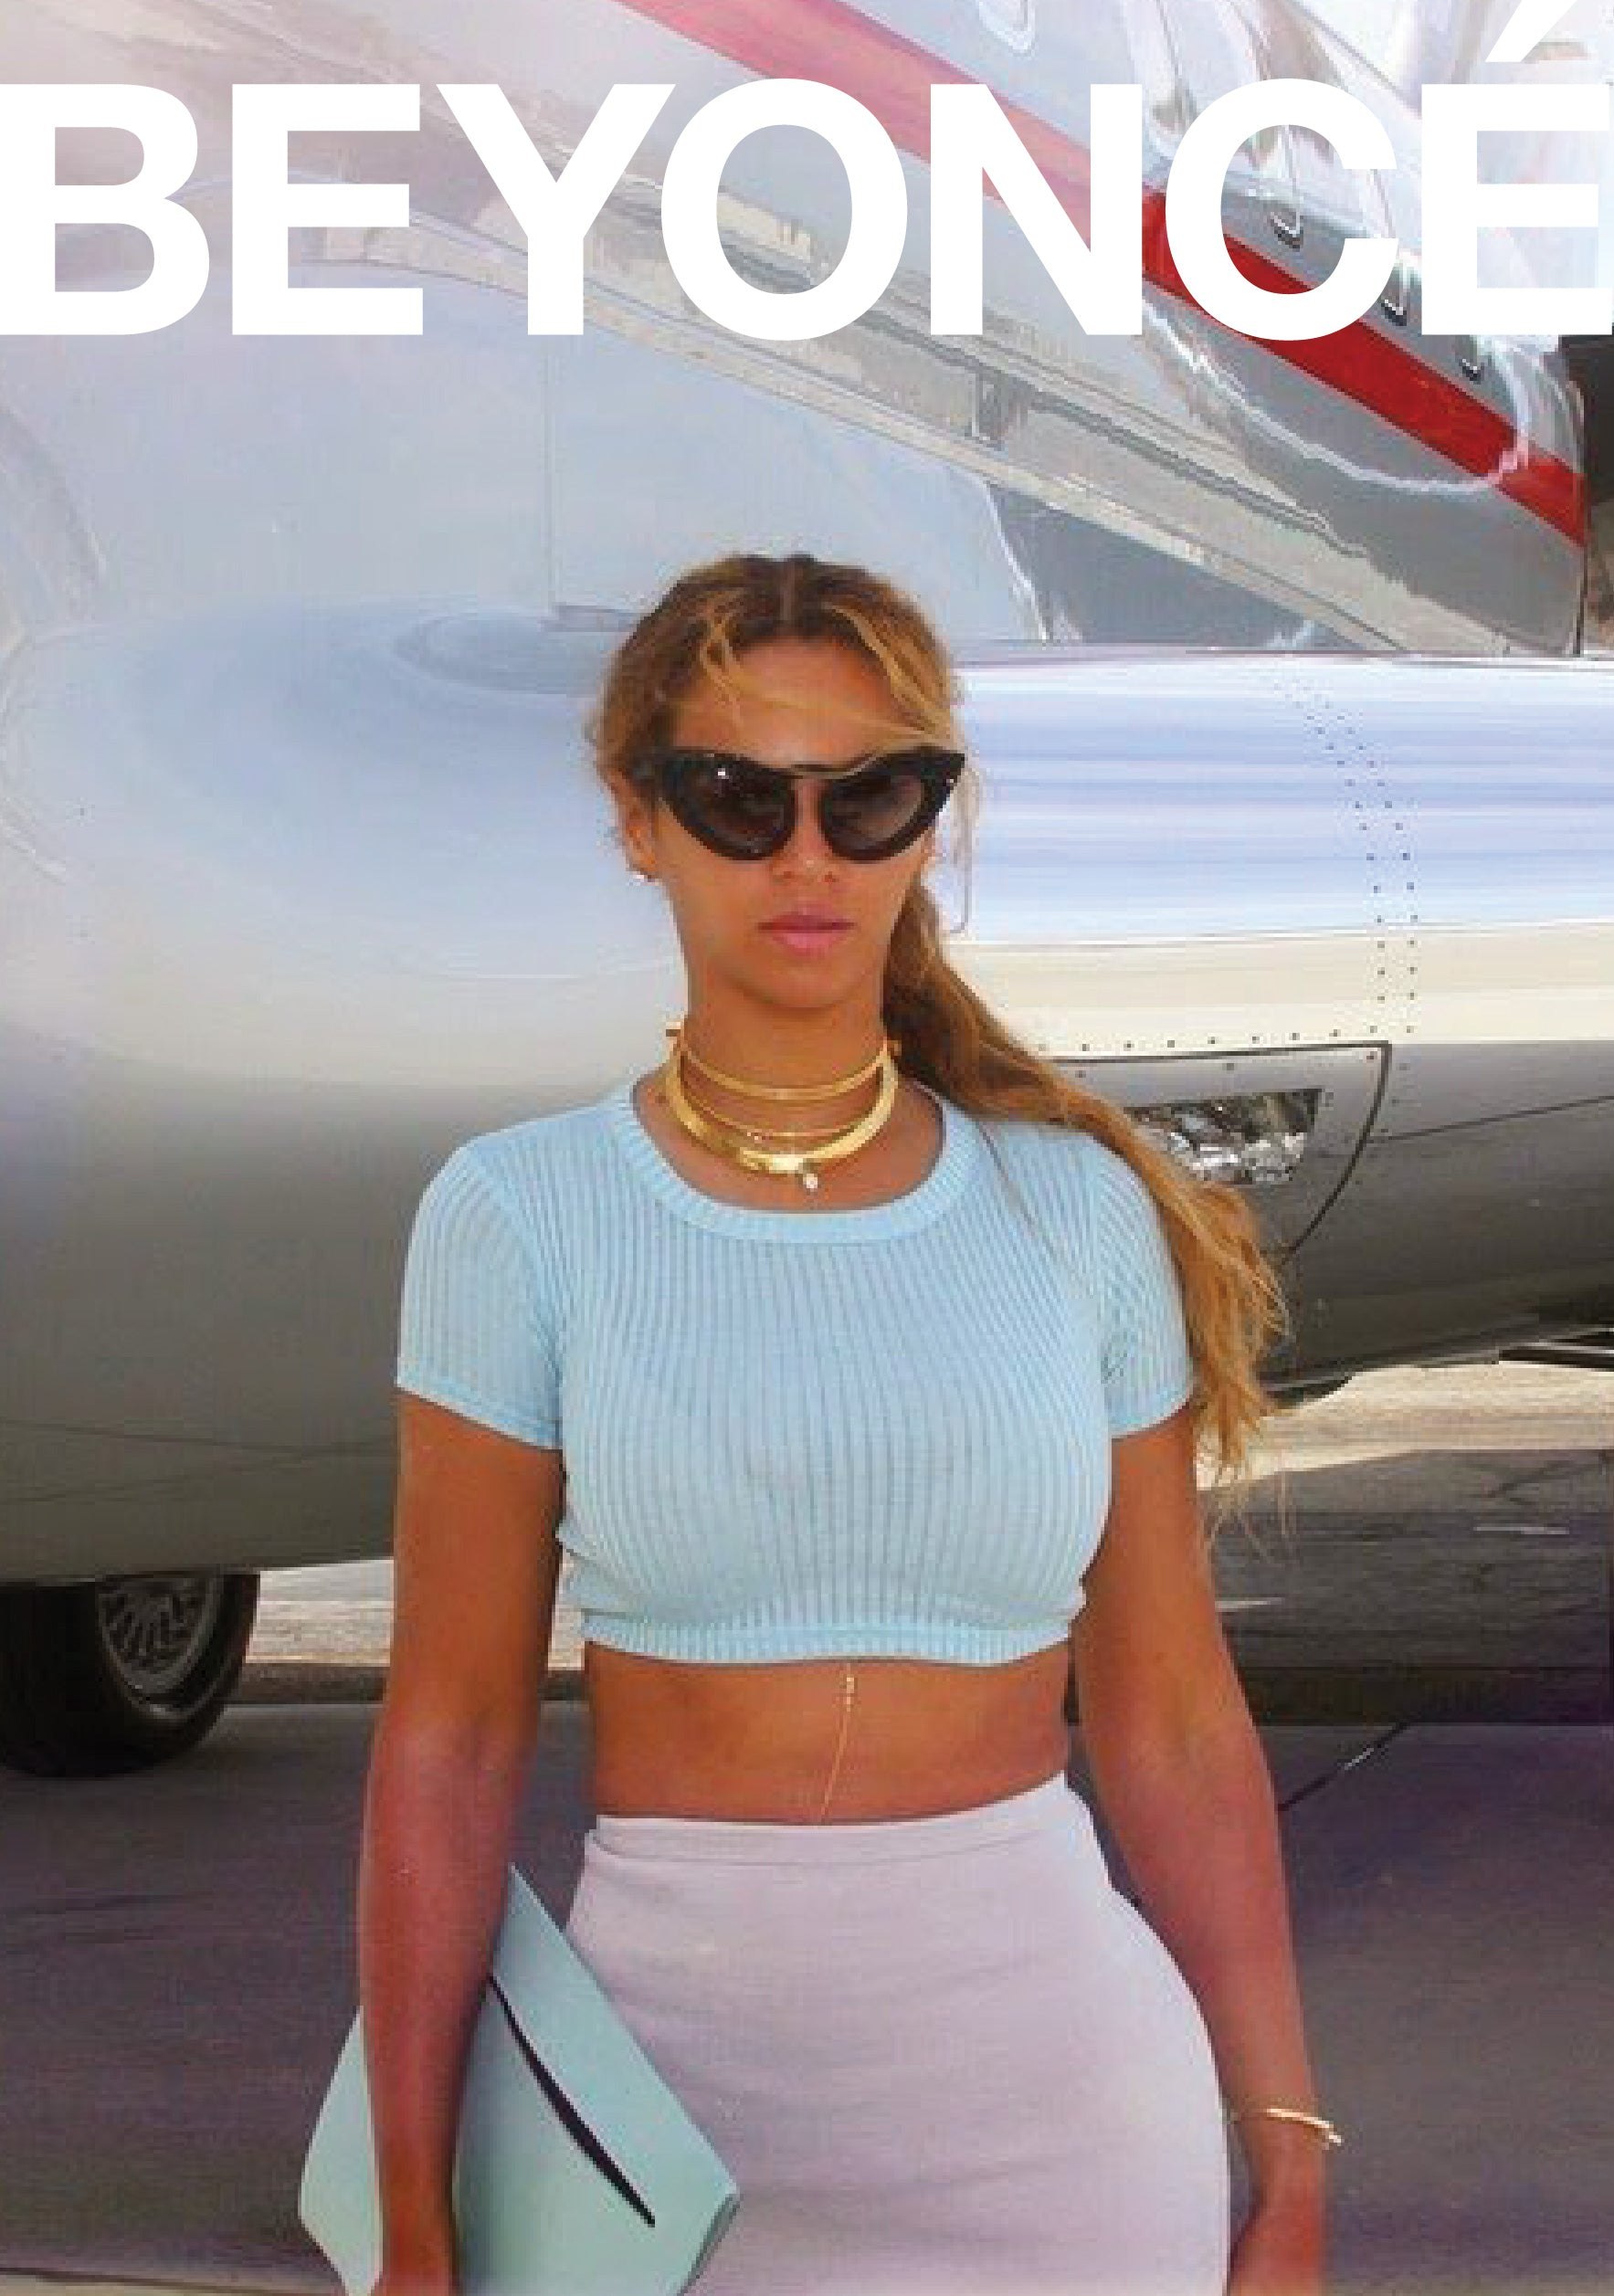 Third Crown Beyonce private jet Arc Choker jewelry runway genderless statement piece